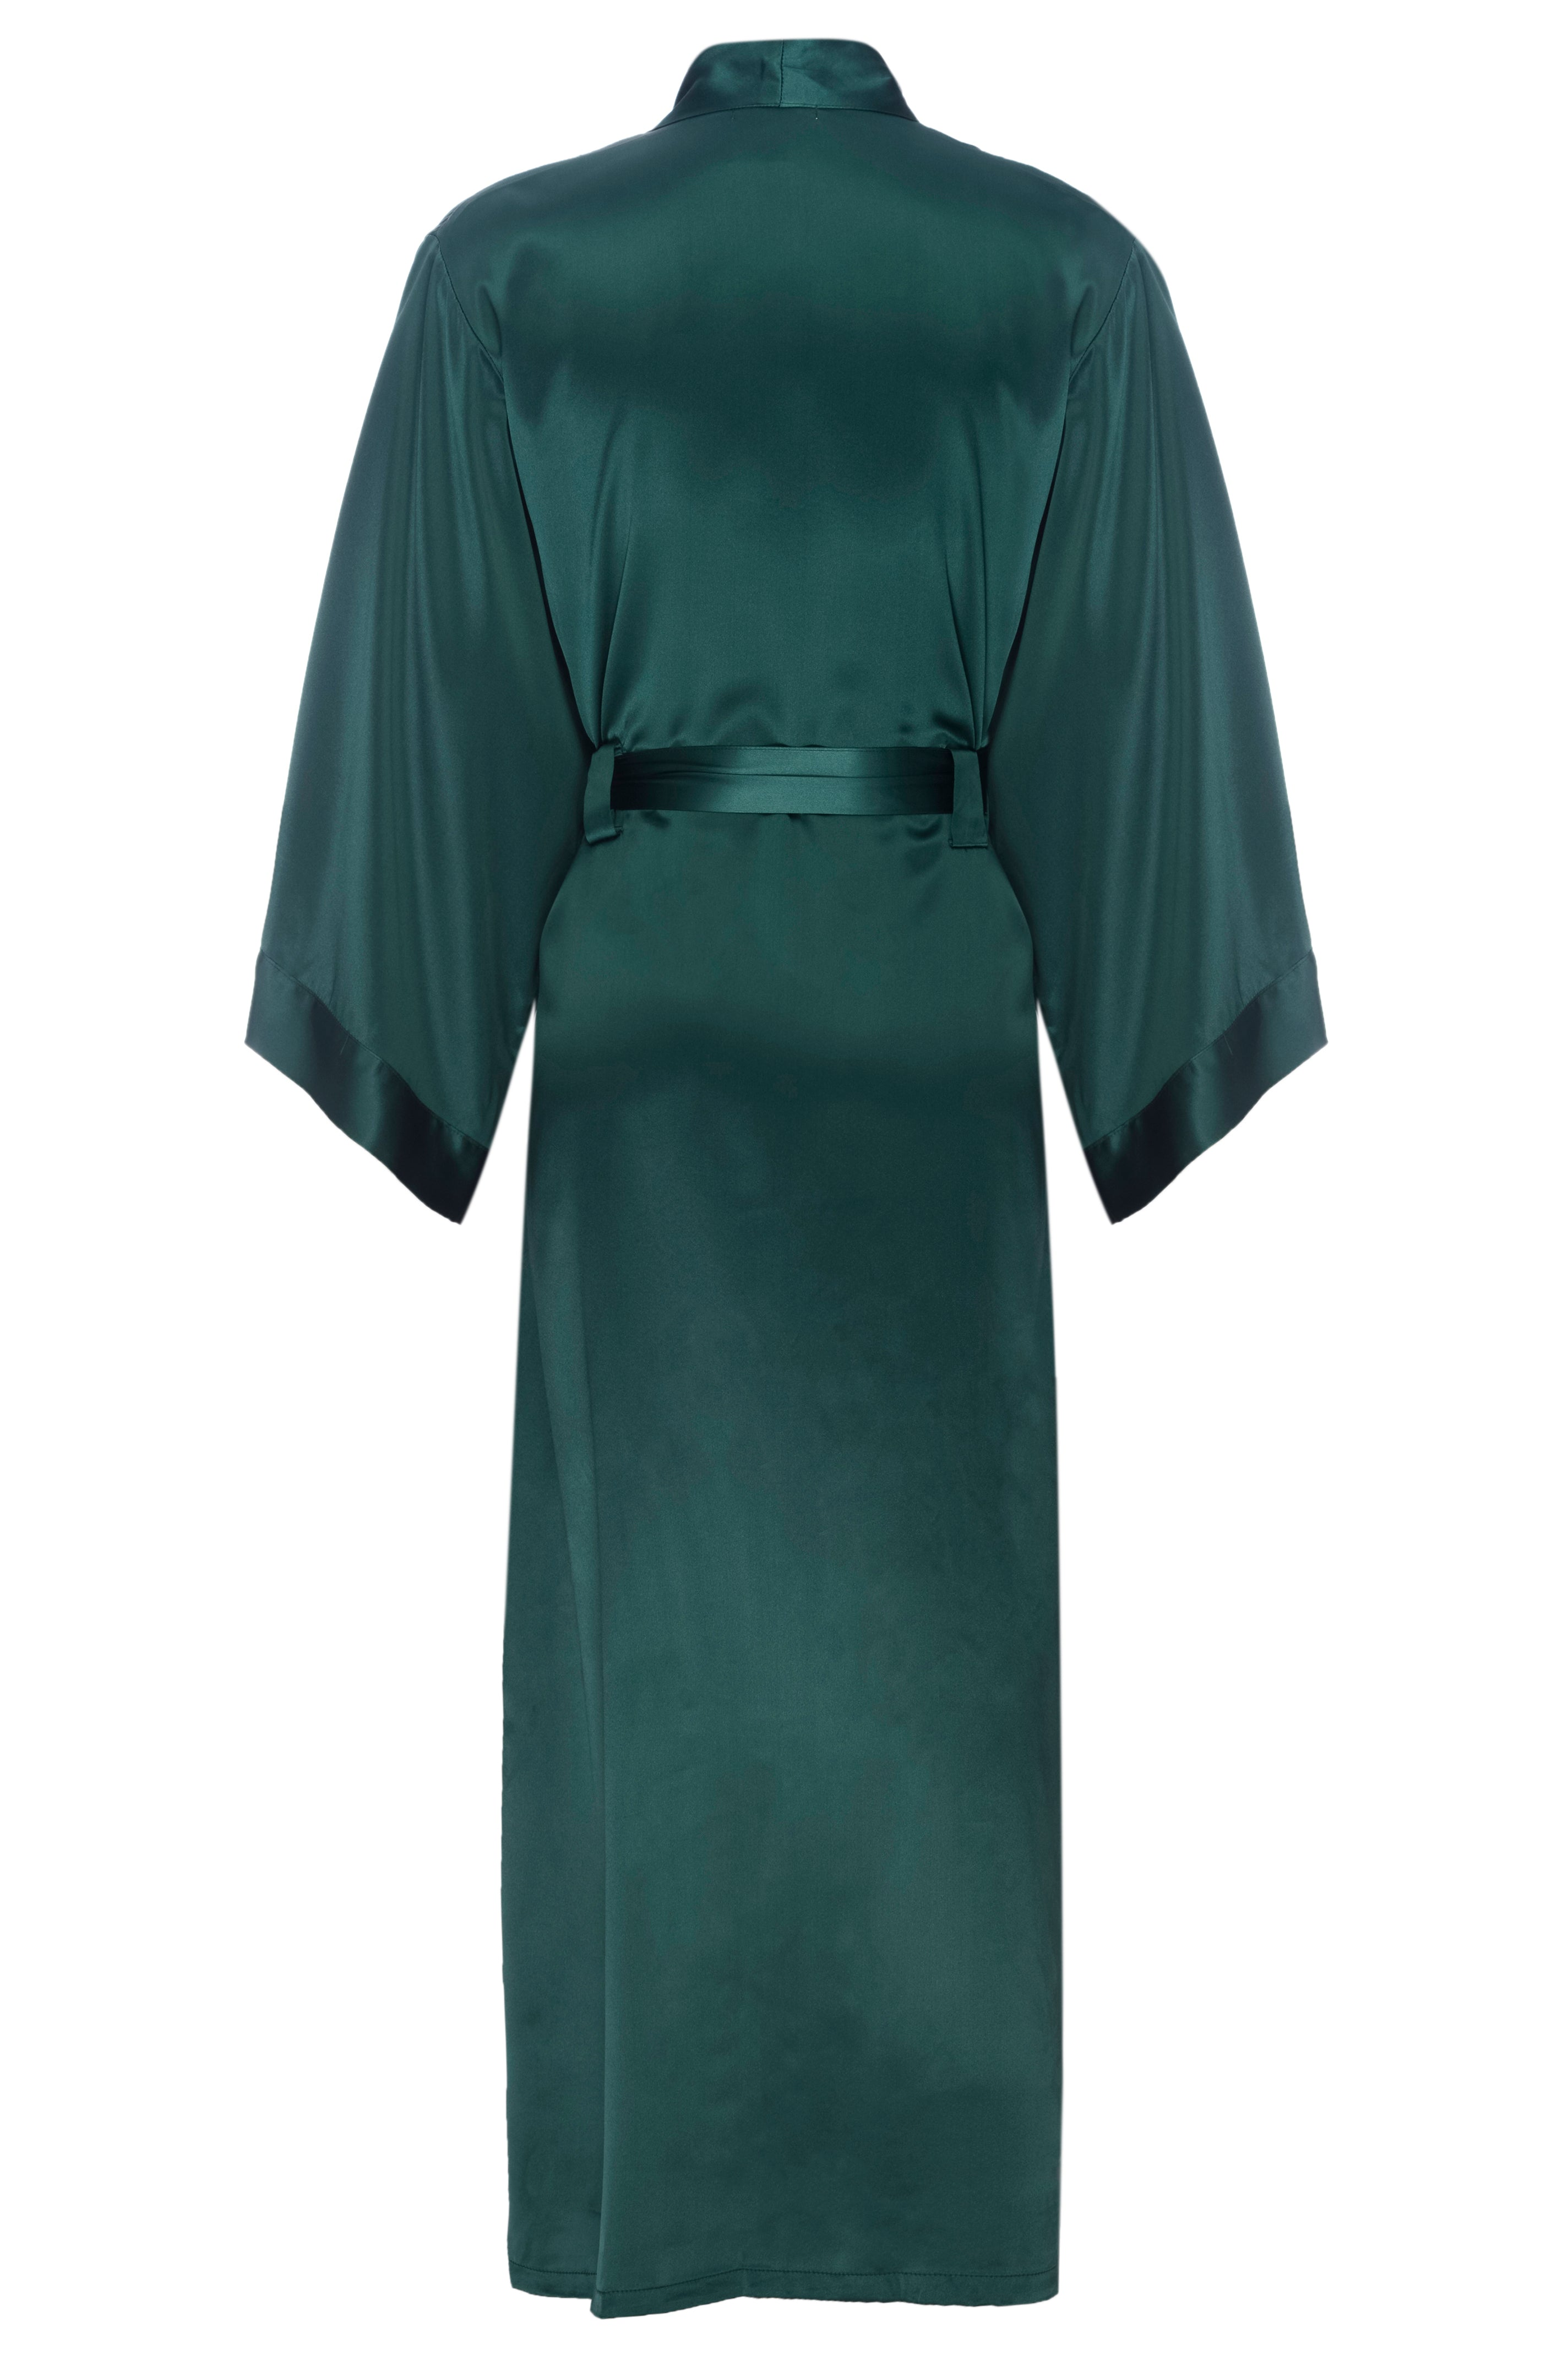 NEW: Emerald Green Silk Robe- Full Length